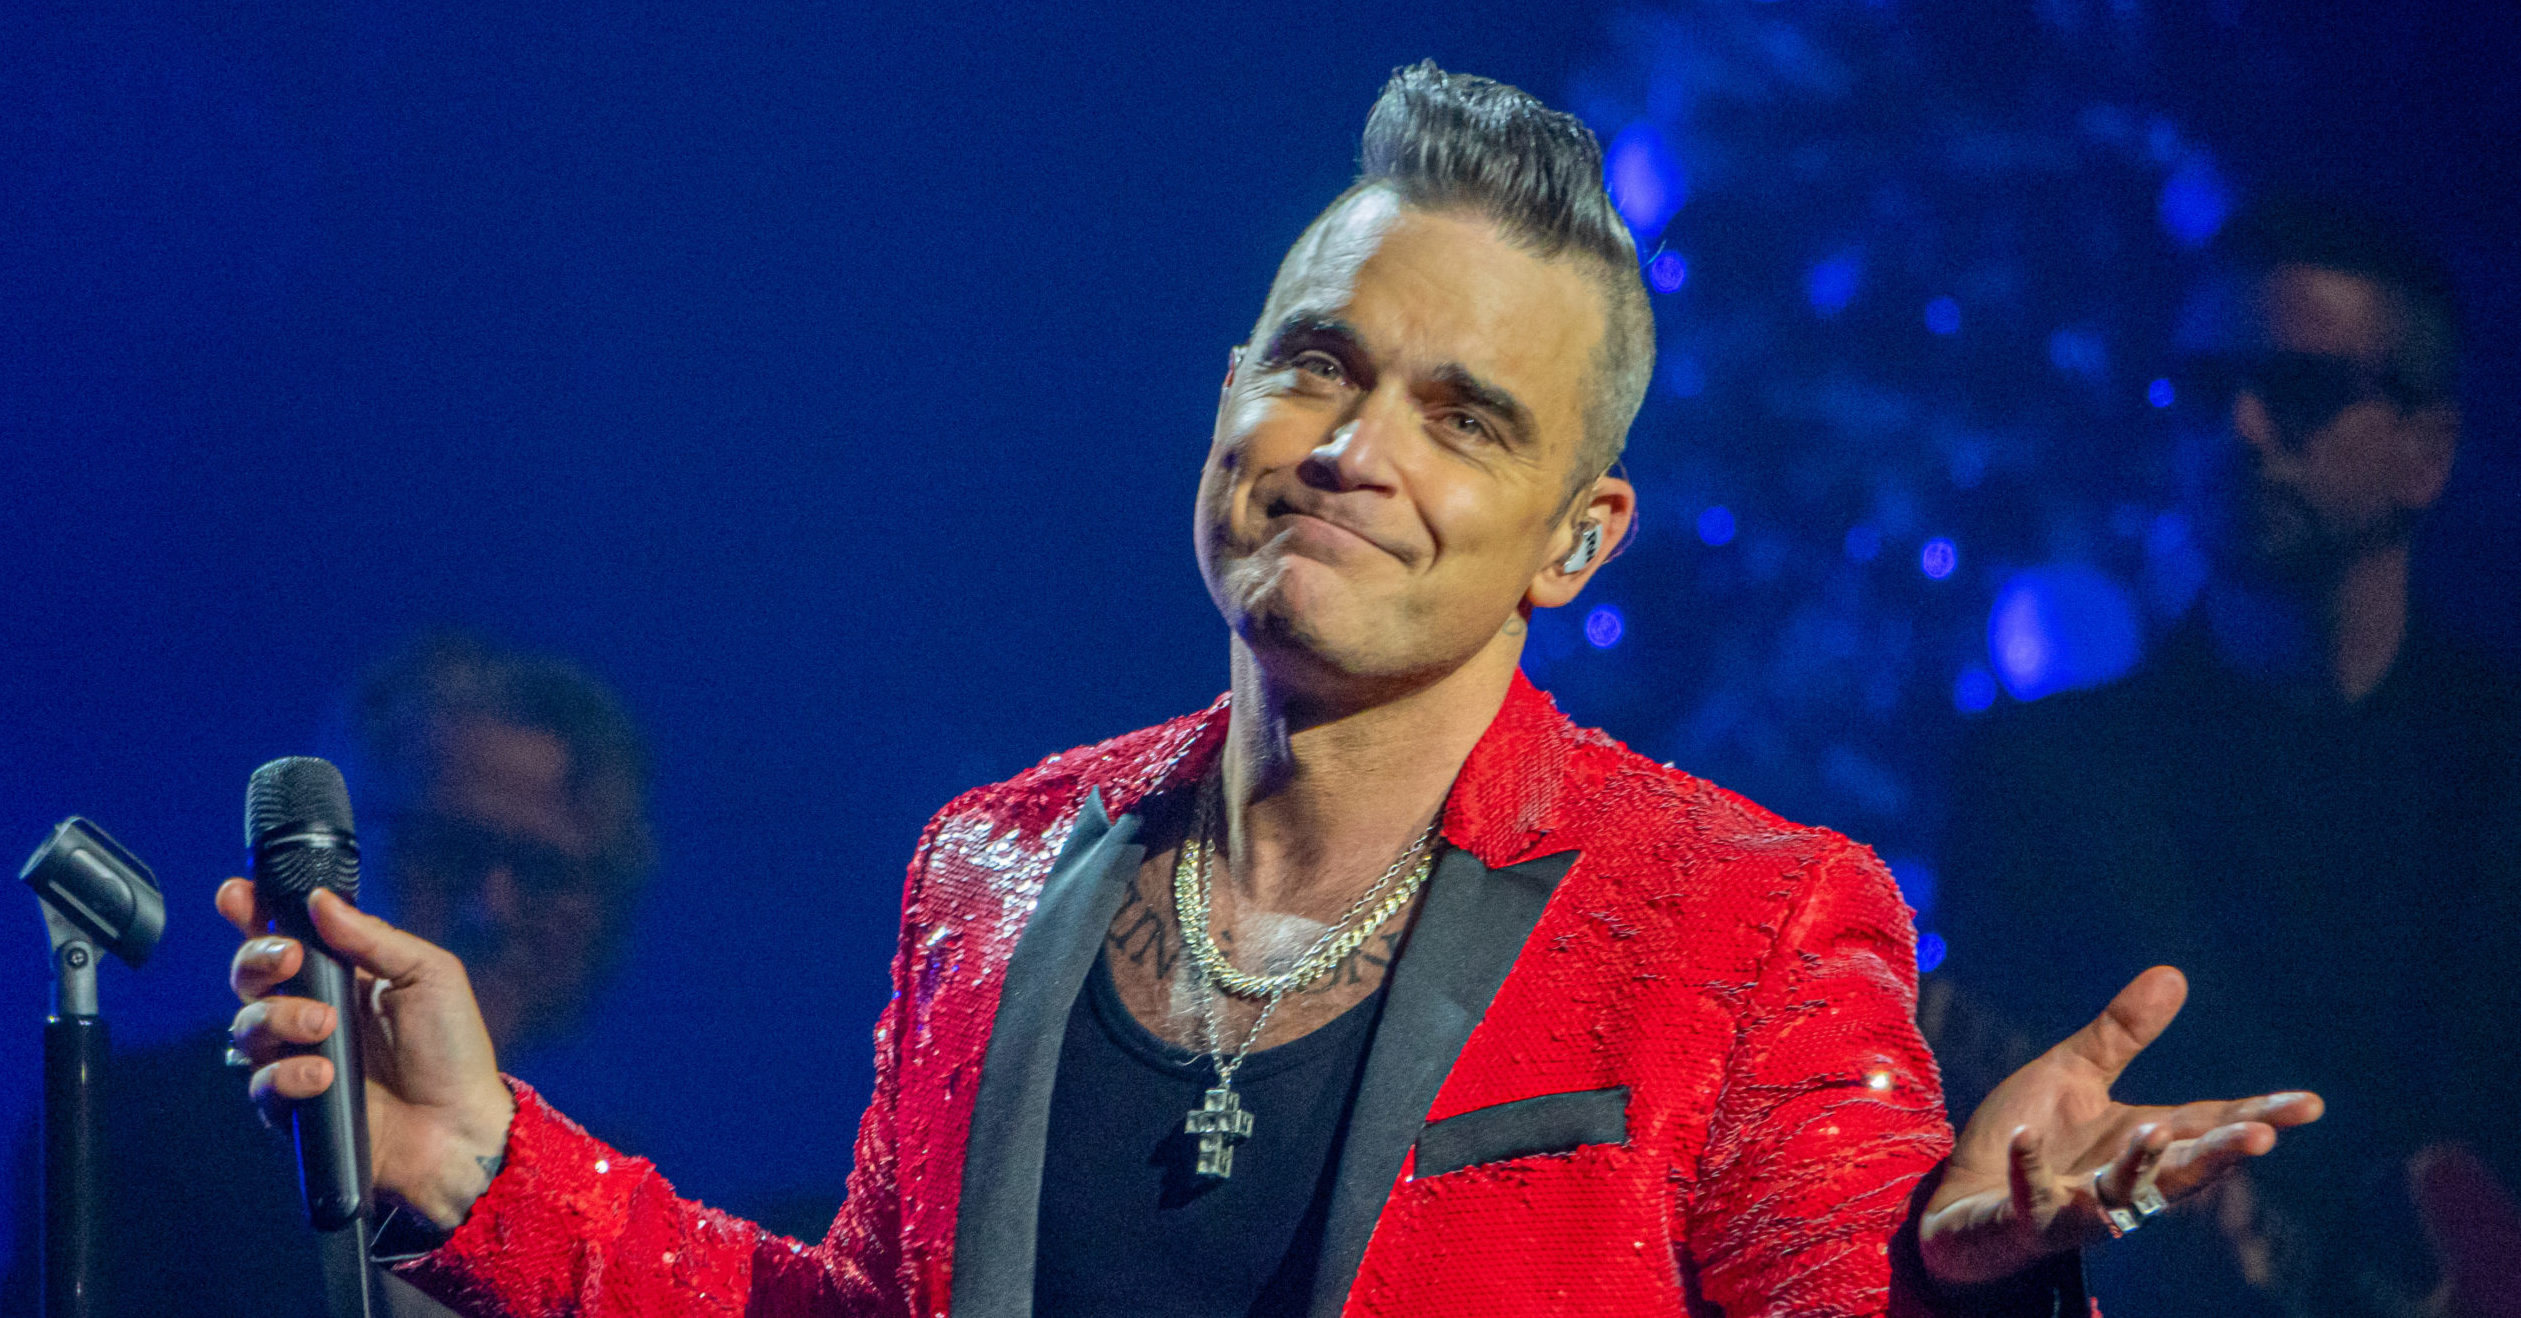 Robbie Williams has five TV shows in the works